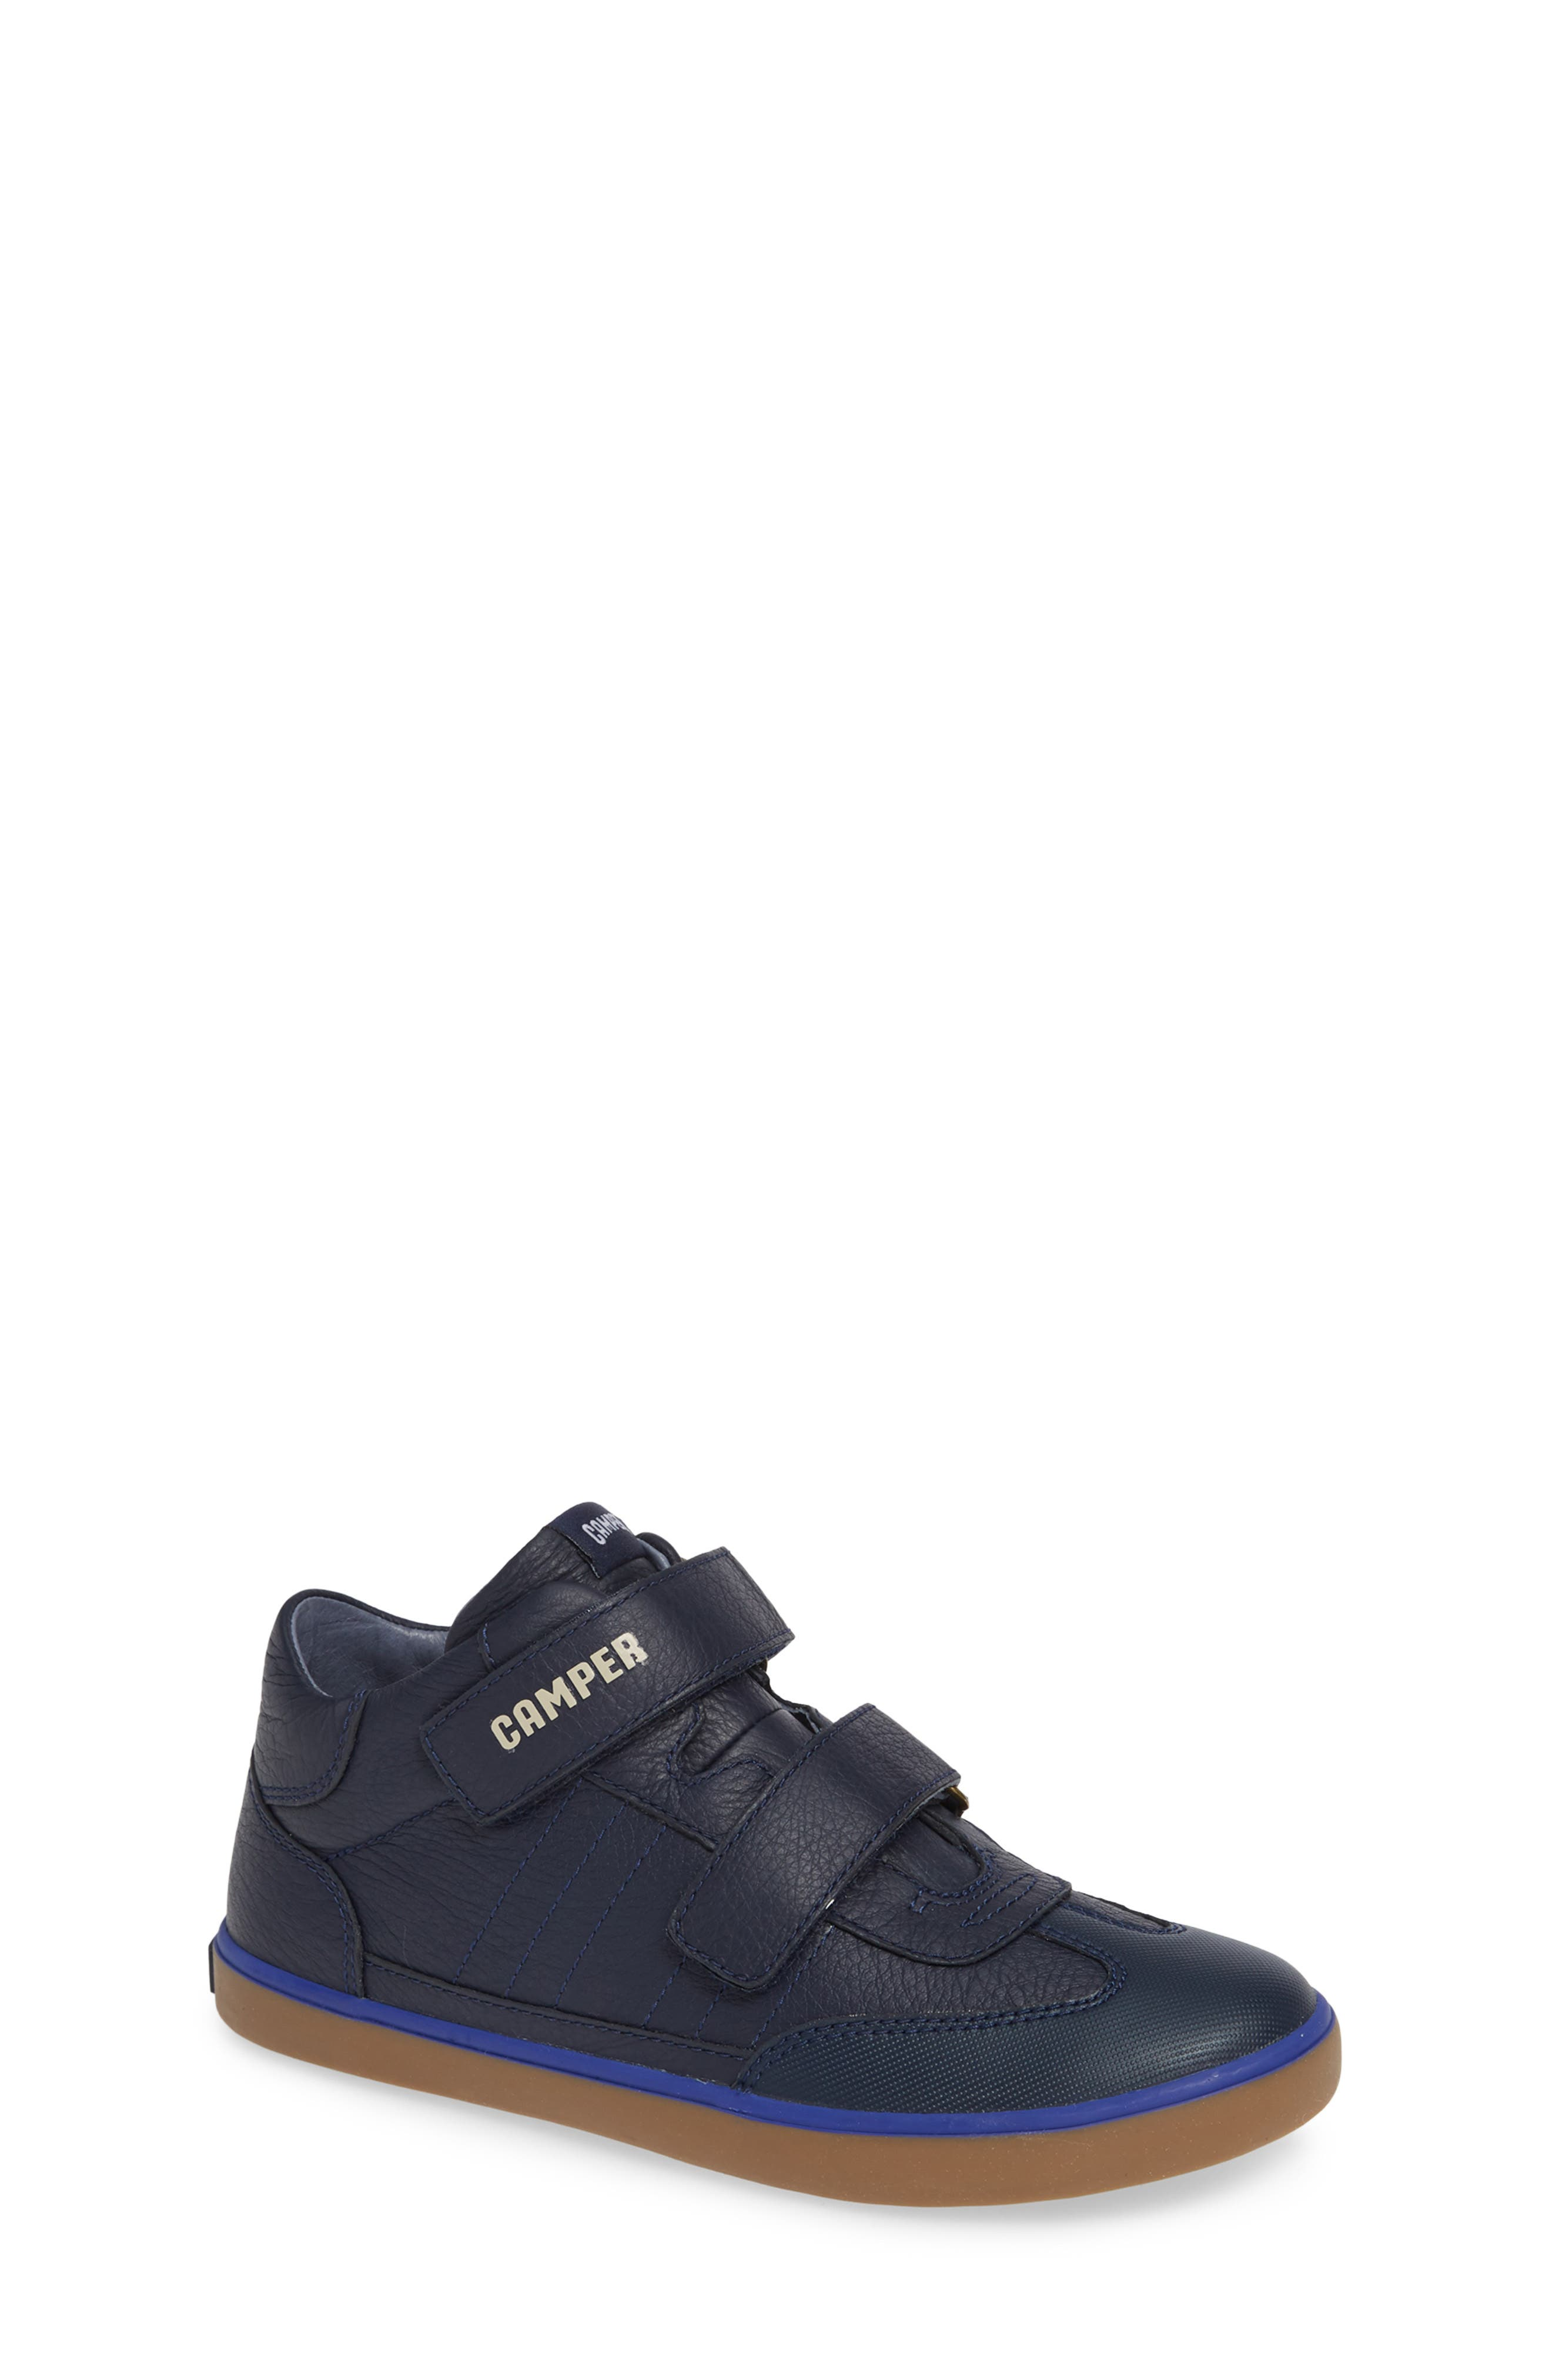 Pursuit Sneaker,                         Main,                         color, 410